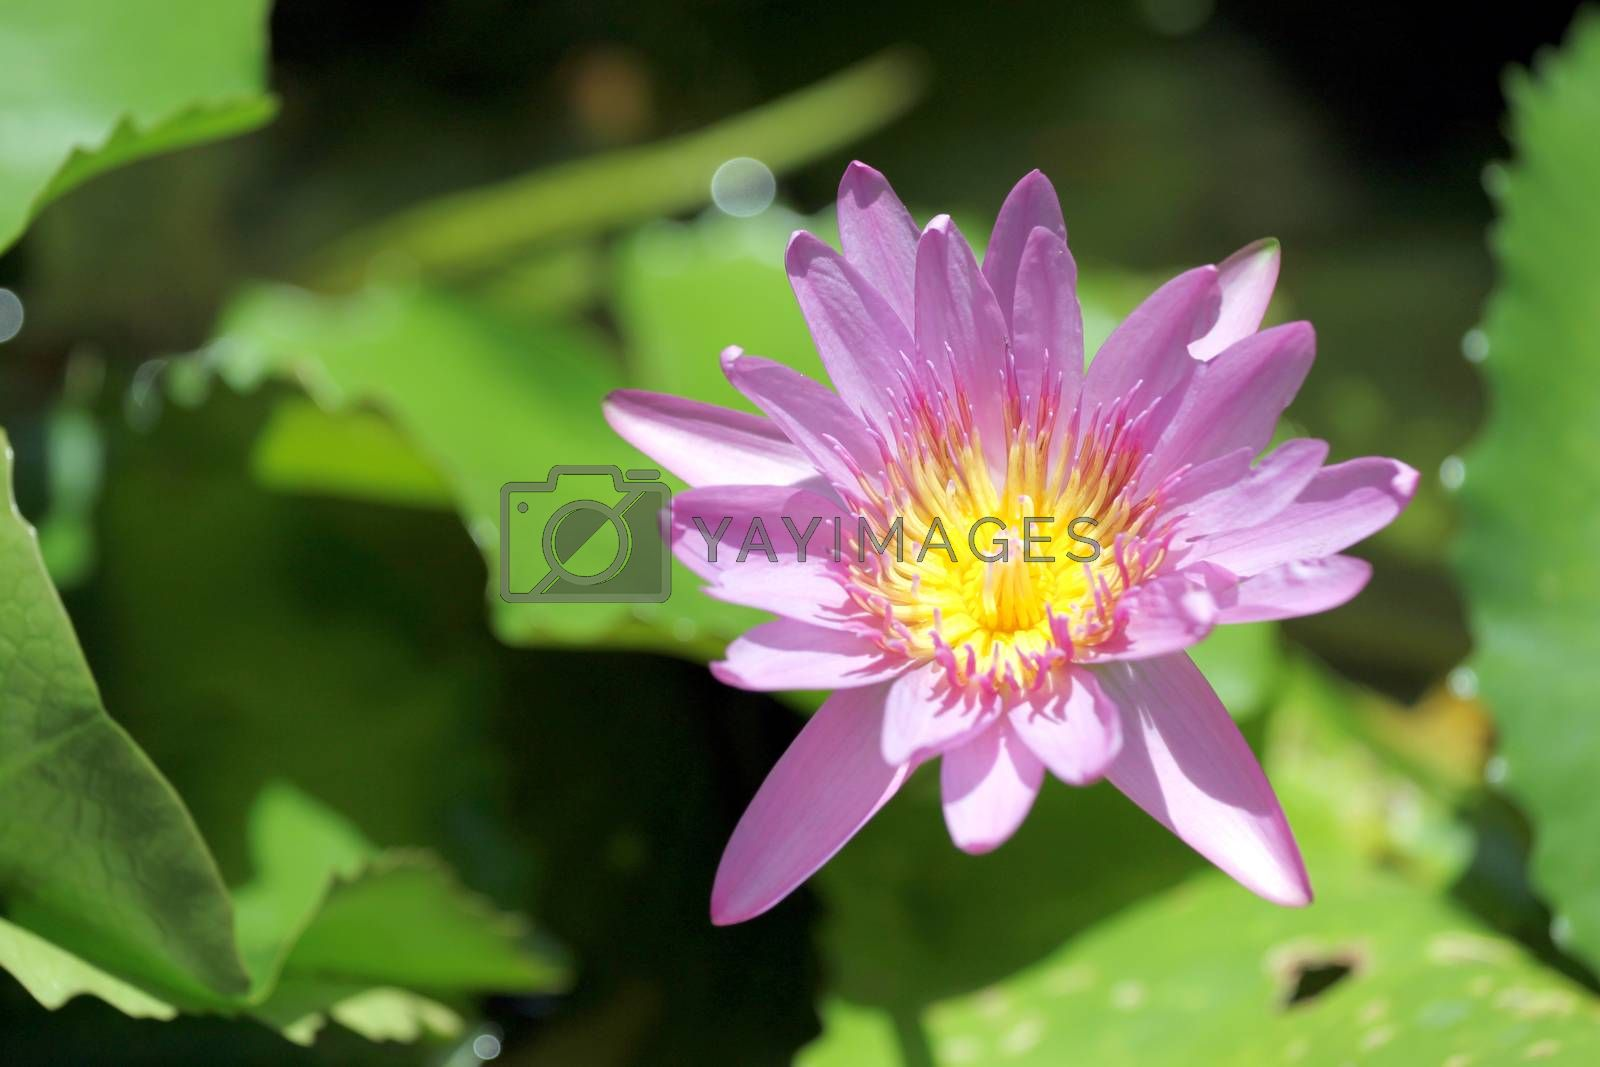 The Pink lotus in the pond and green leaf lotus of  background.